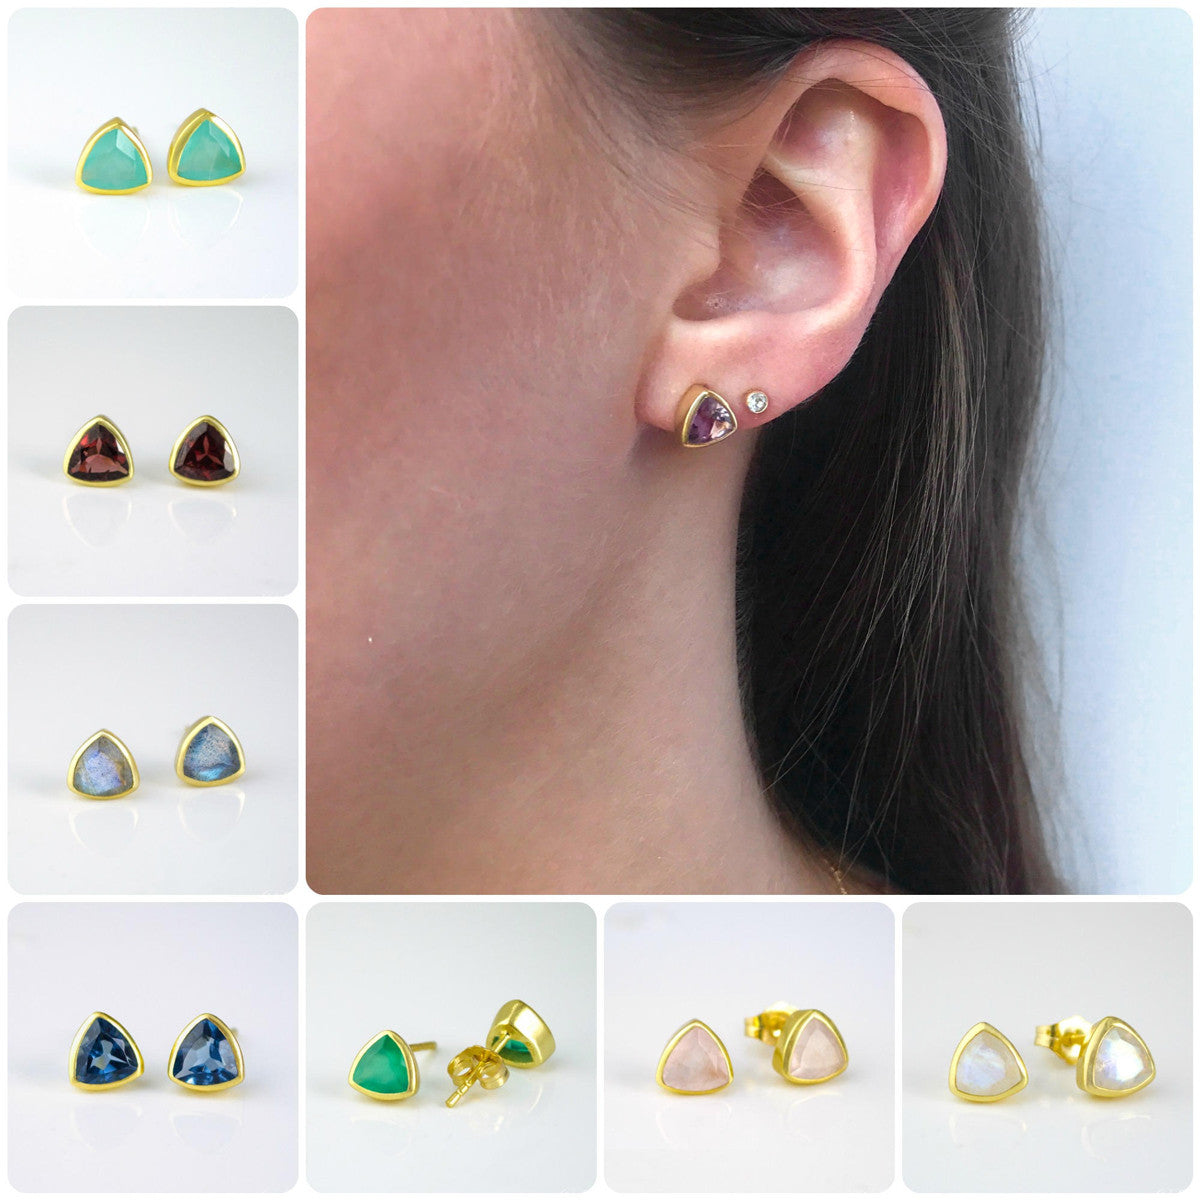 jewelry p round fullxfull il turquoise everyday earrings stud contemporary geometric minimalist